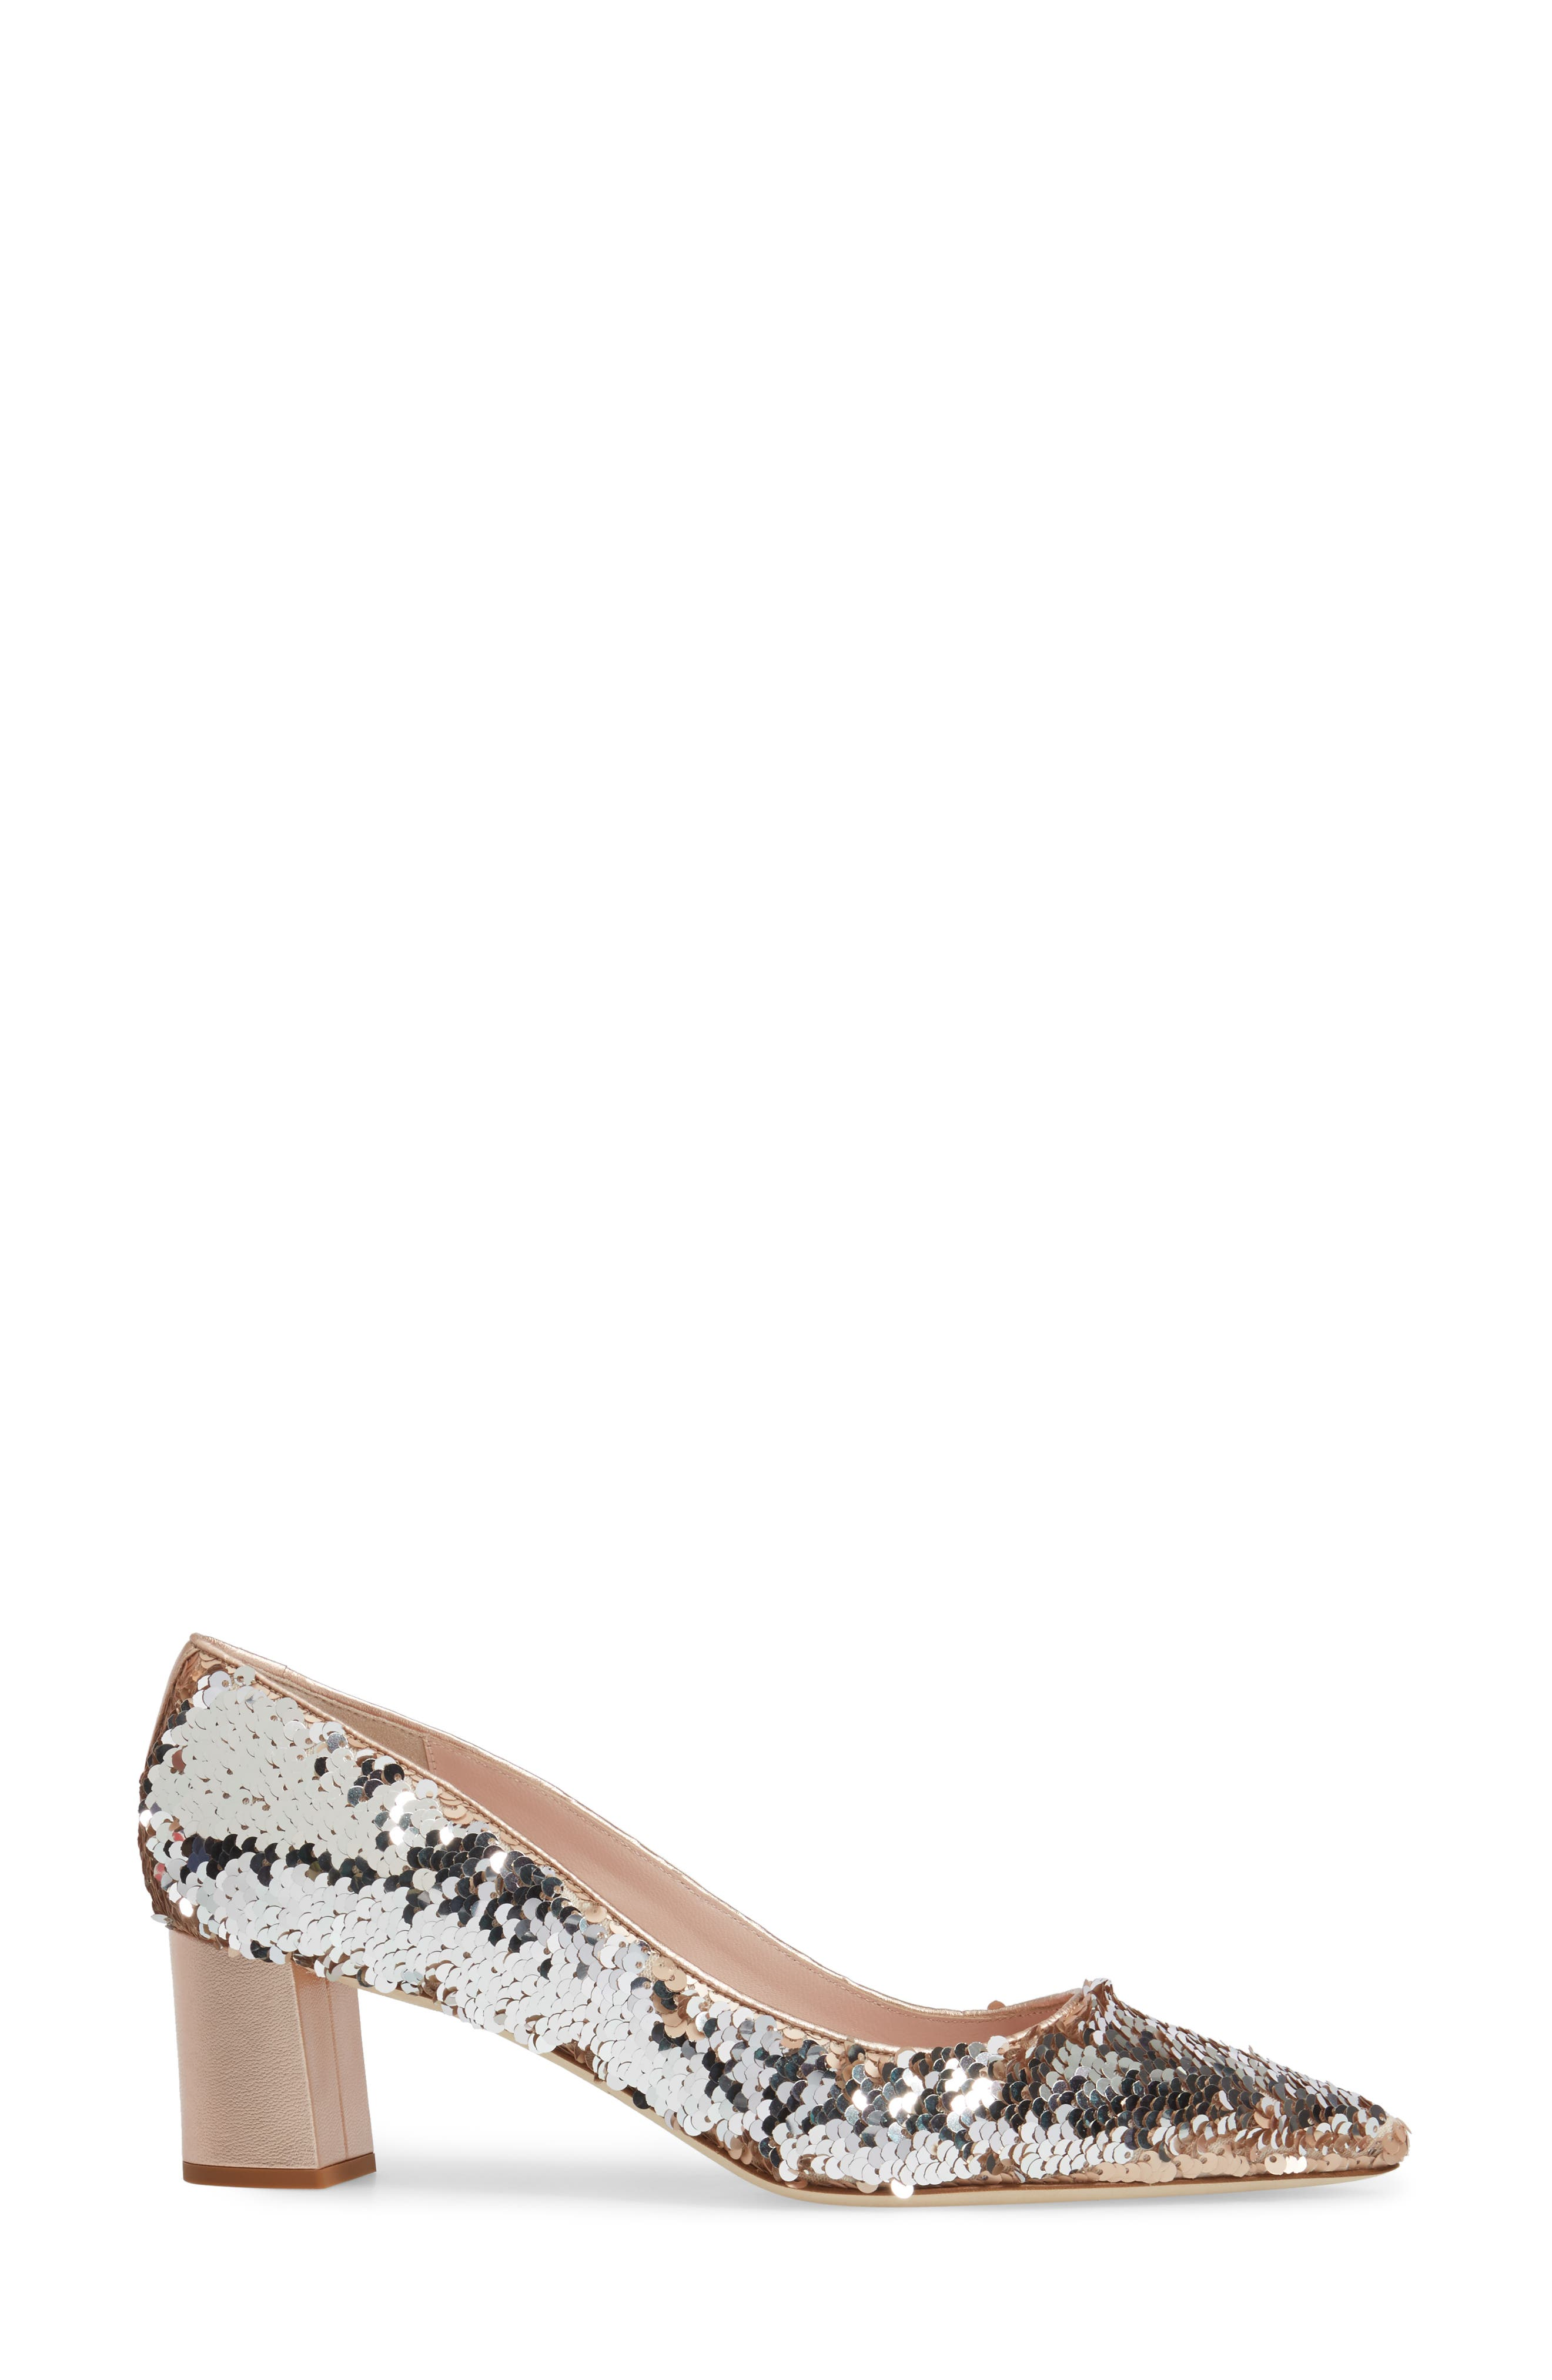 mauna sequin pump,                             Alternate thumbnail 3, color,                             Rose Gold/ Silver